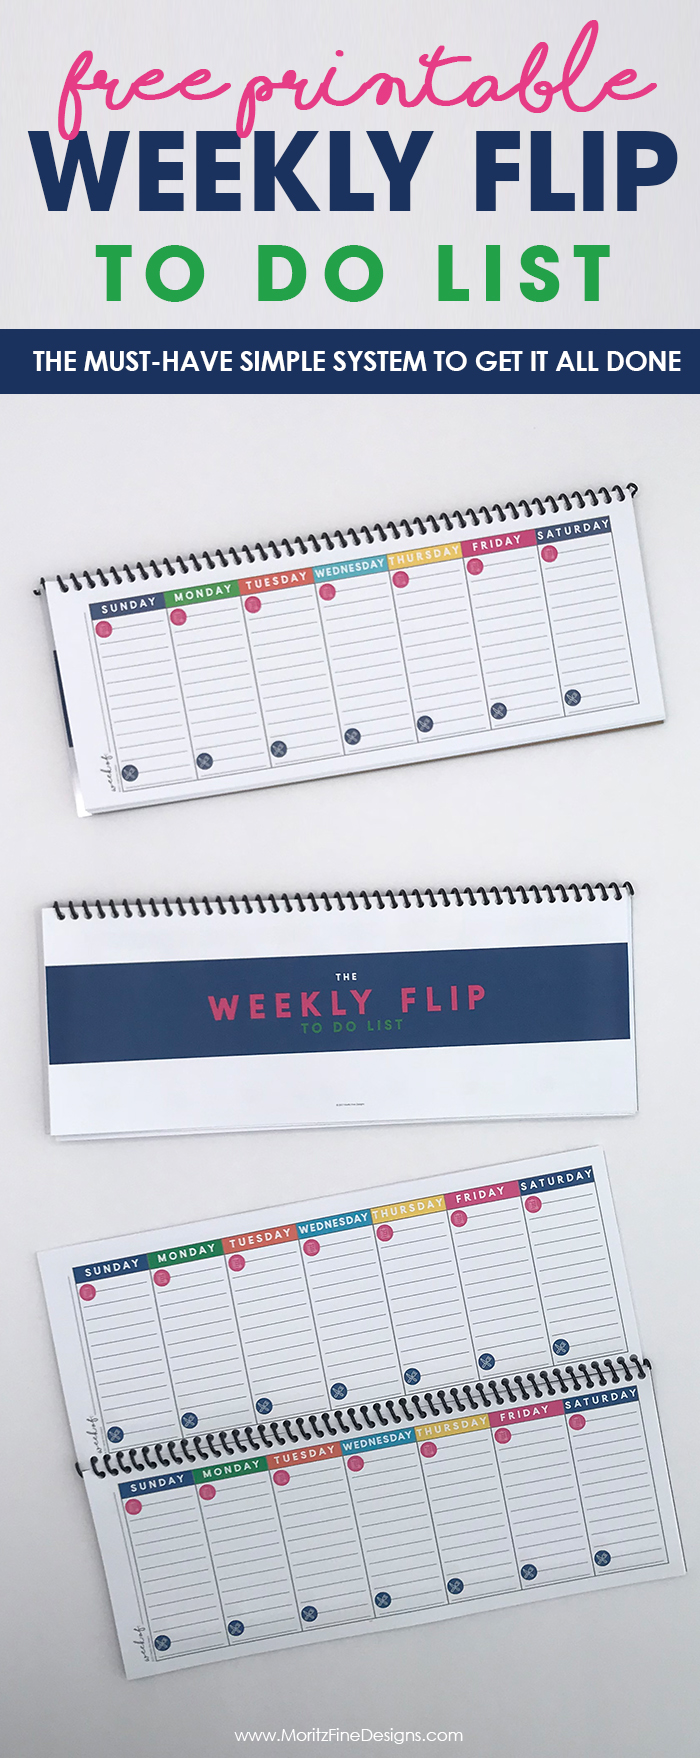 This is a must-have, simple printable weekly to-do list system to get it all done. This free system will help moms get their daily goals done and create a weekly menu plan. #todolist #weeklyspread #freeprintable #printablecalendarfree #organizationideas